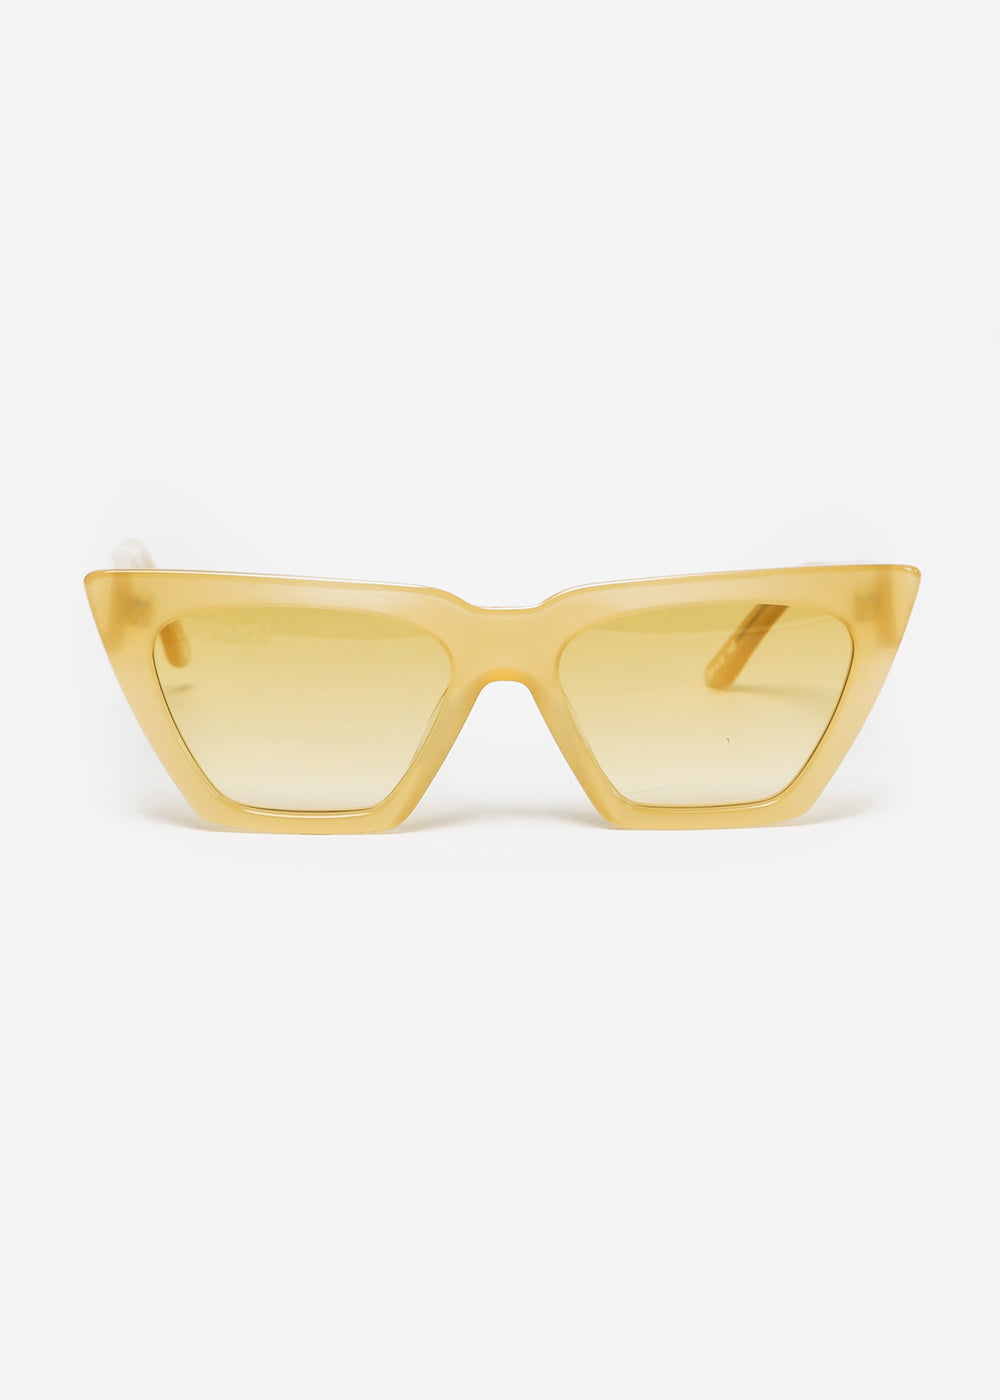 Carla Colour Modan Sunglasses in Galliano + Sunrise — New Classics Studios